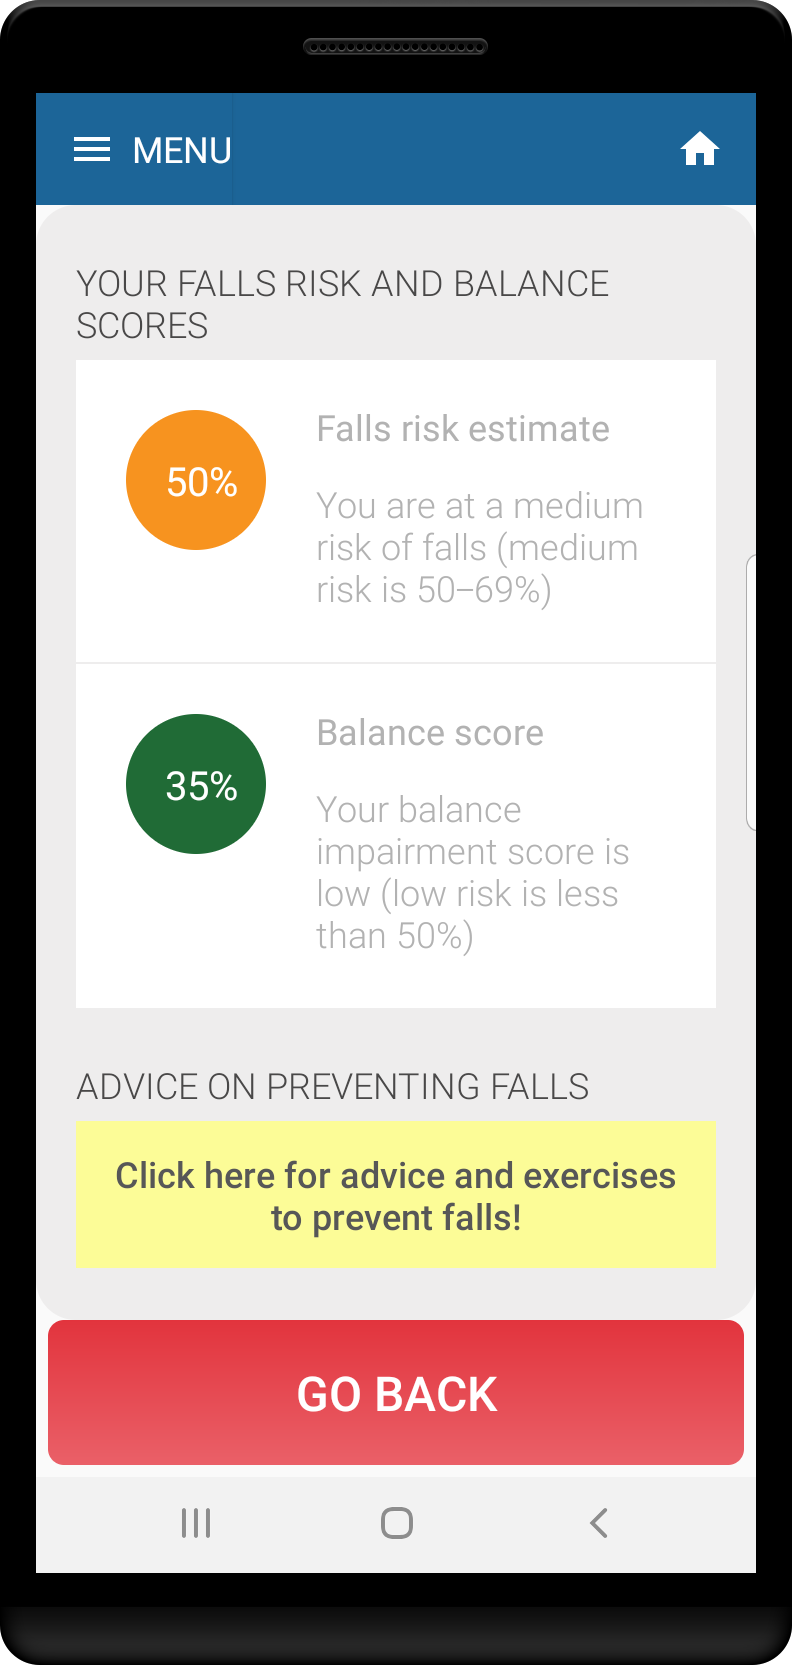 Advice and exercises to prevent falls